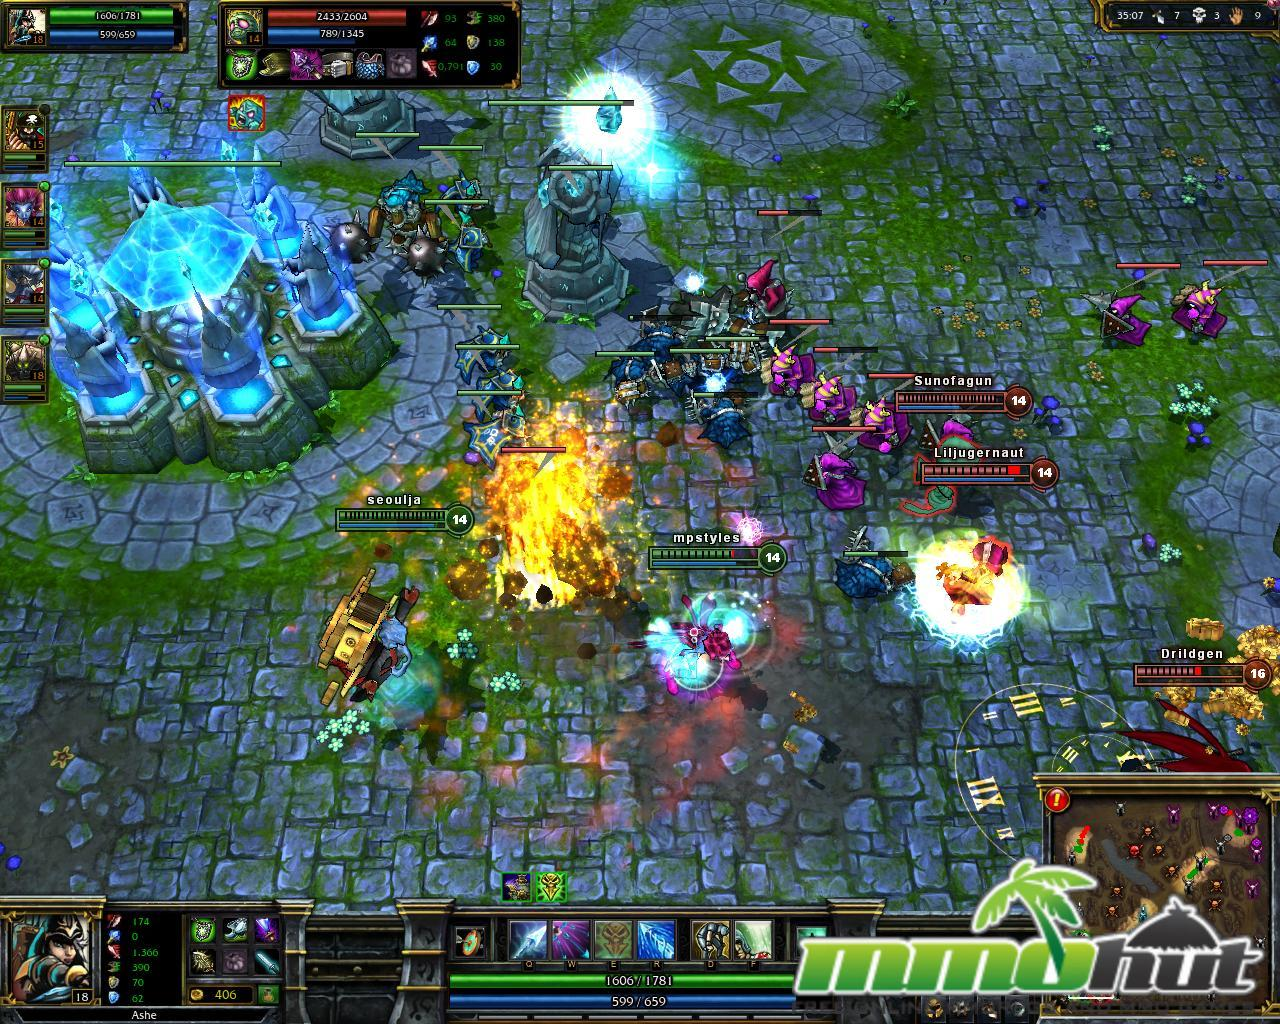 USAO Gaming Studies Blog: League of Legends and Gaming ...